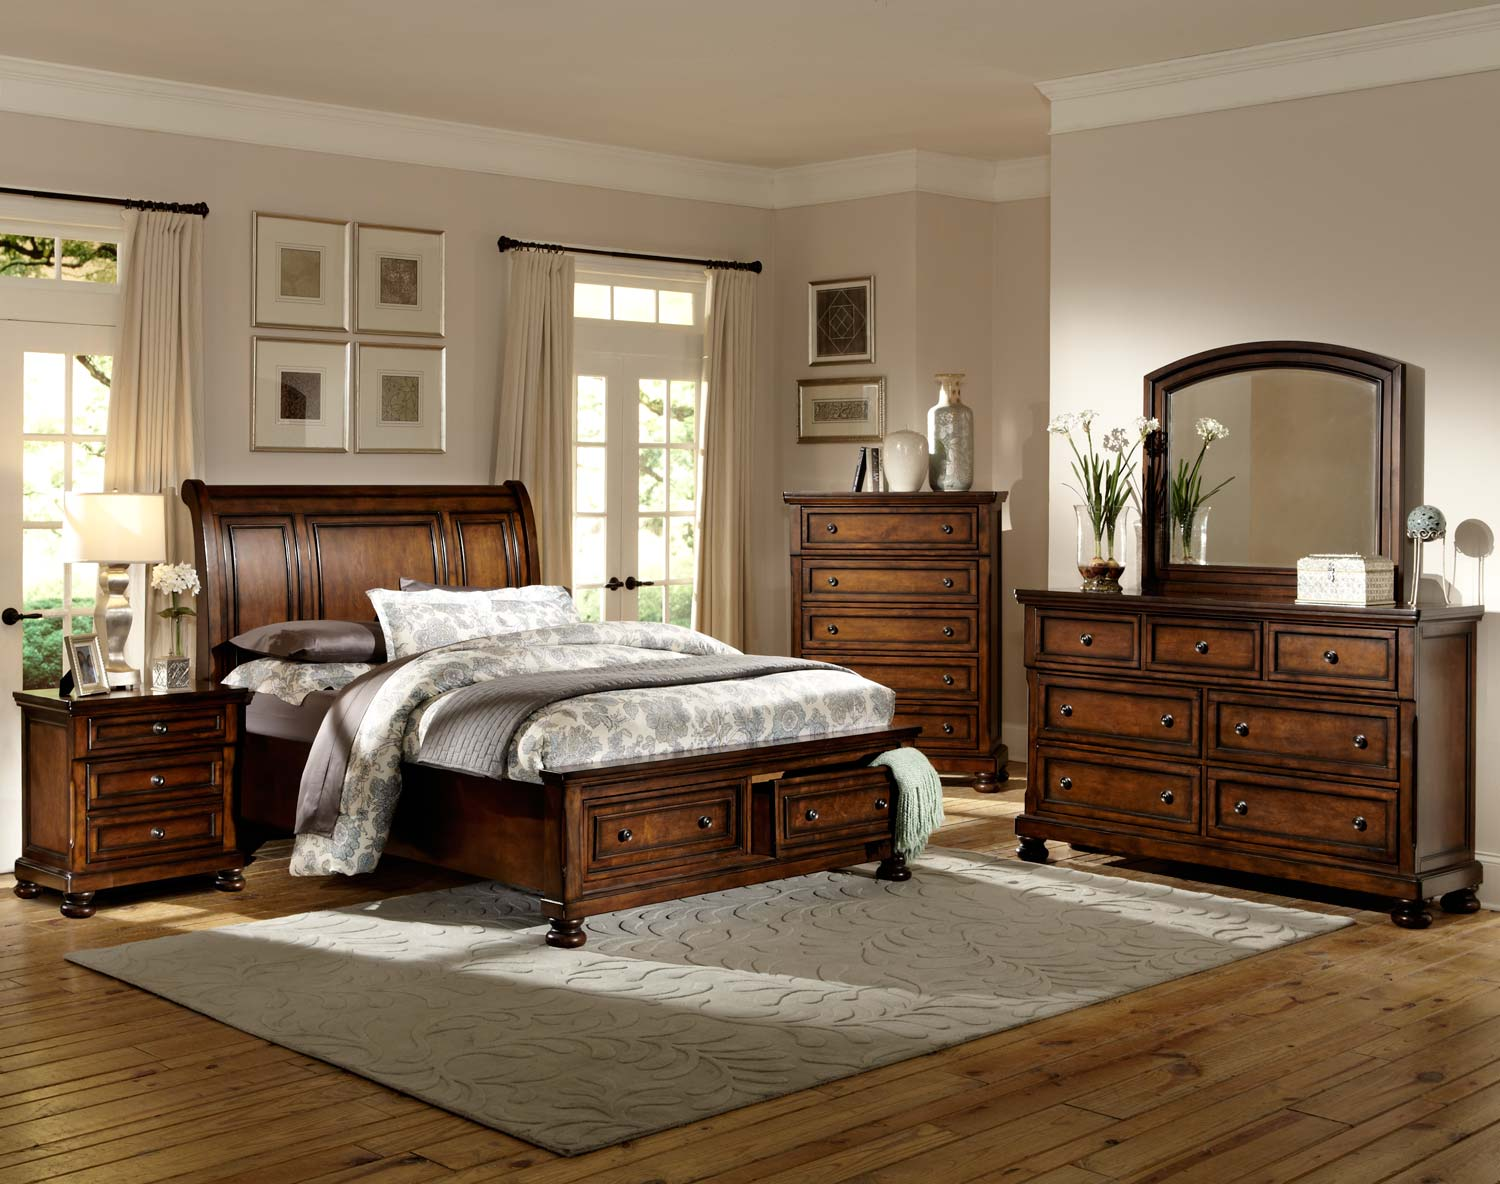 Homelegance Cumberland Platform Bedroom Set - Brown Cherry B2159 ...